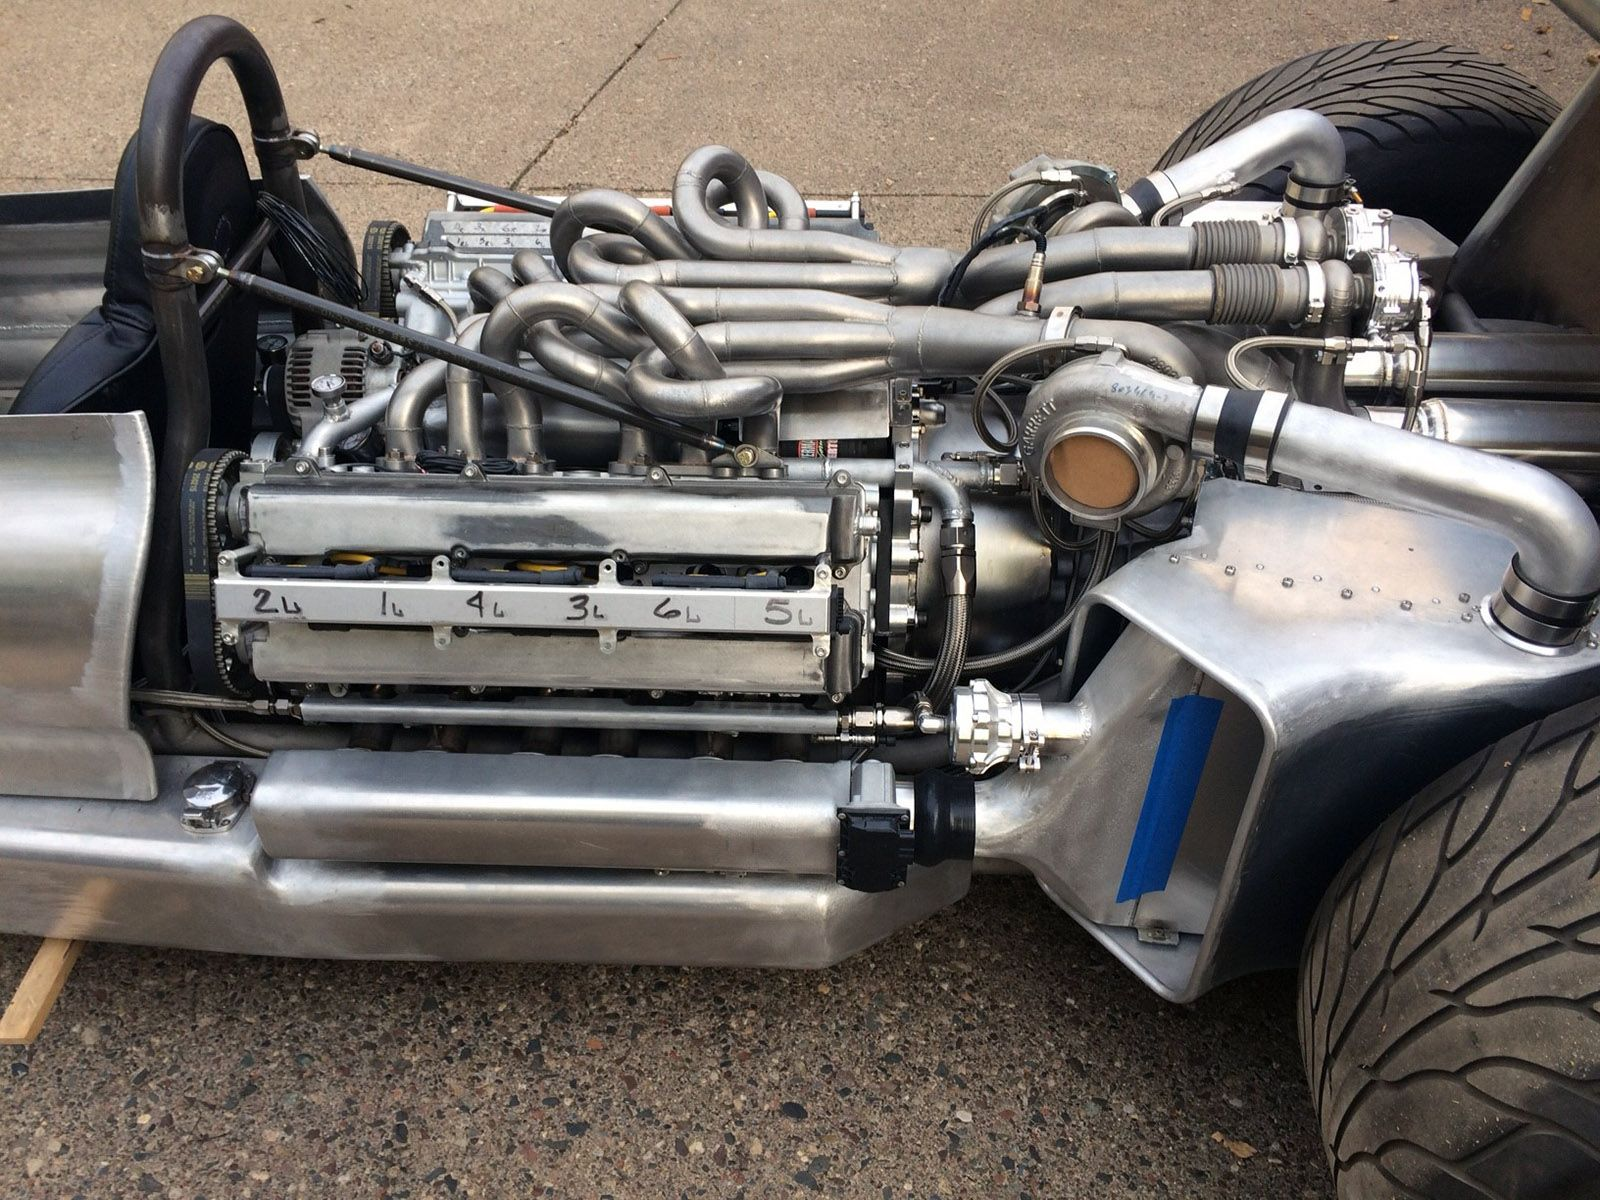 Home built F1 race car with a custom V12 from two Toyota 1JZ